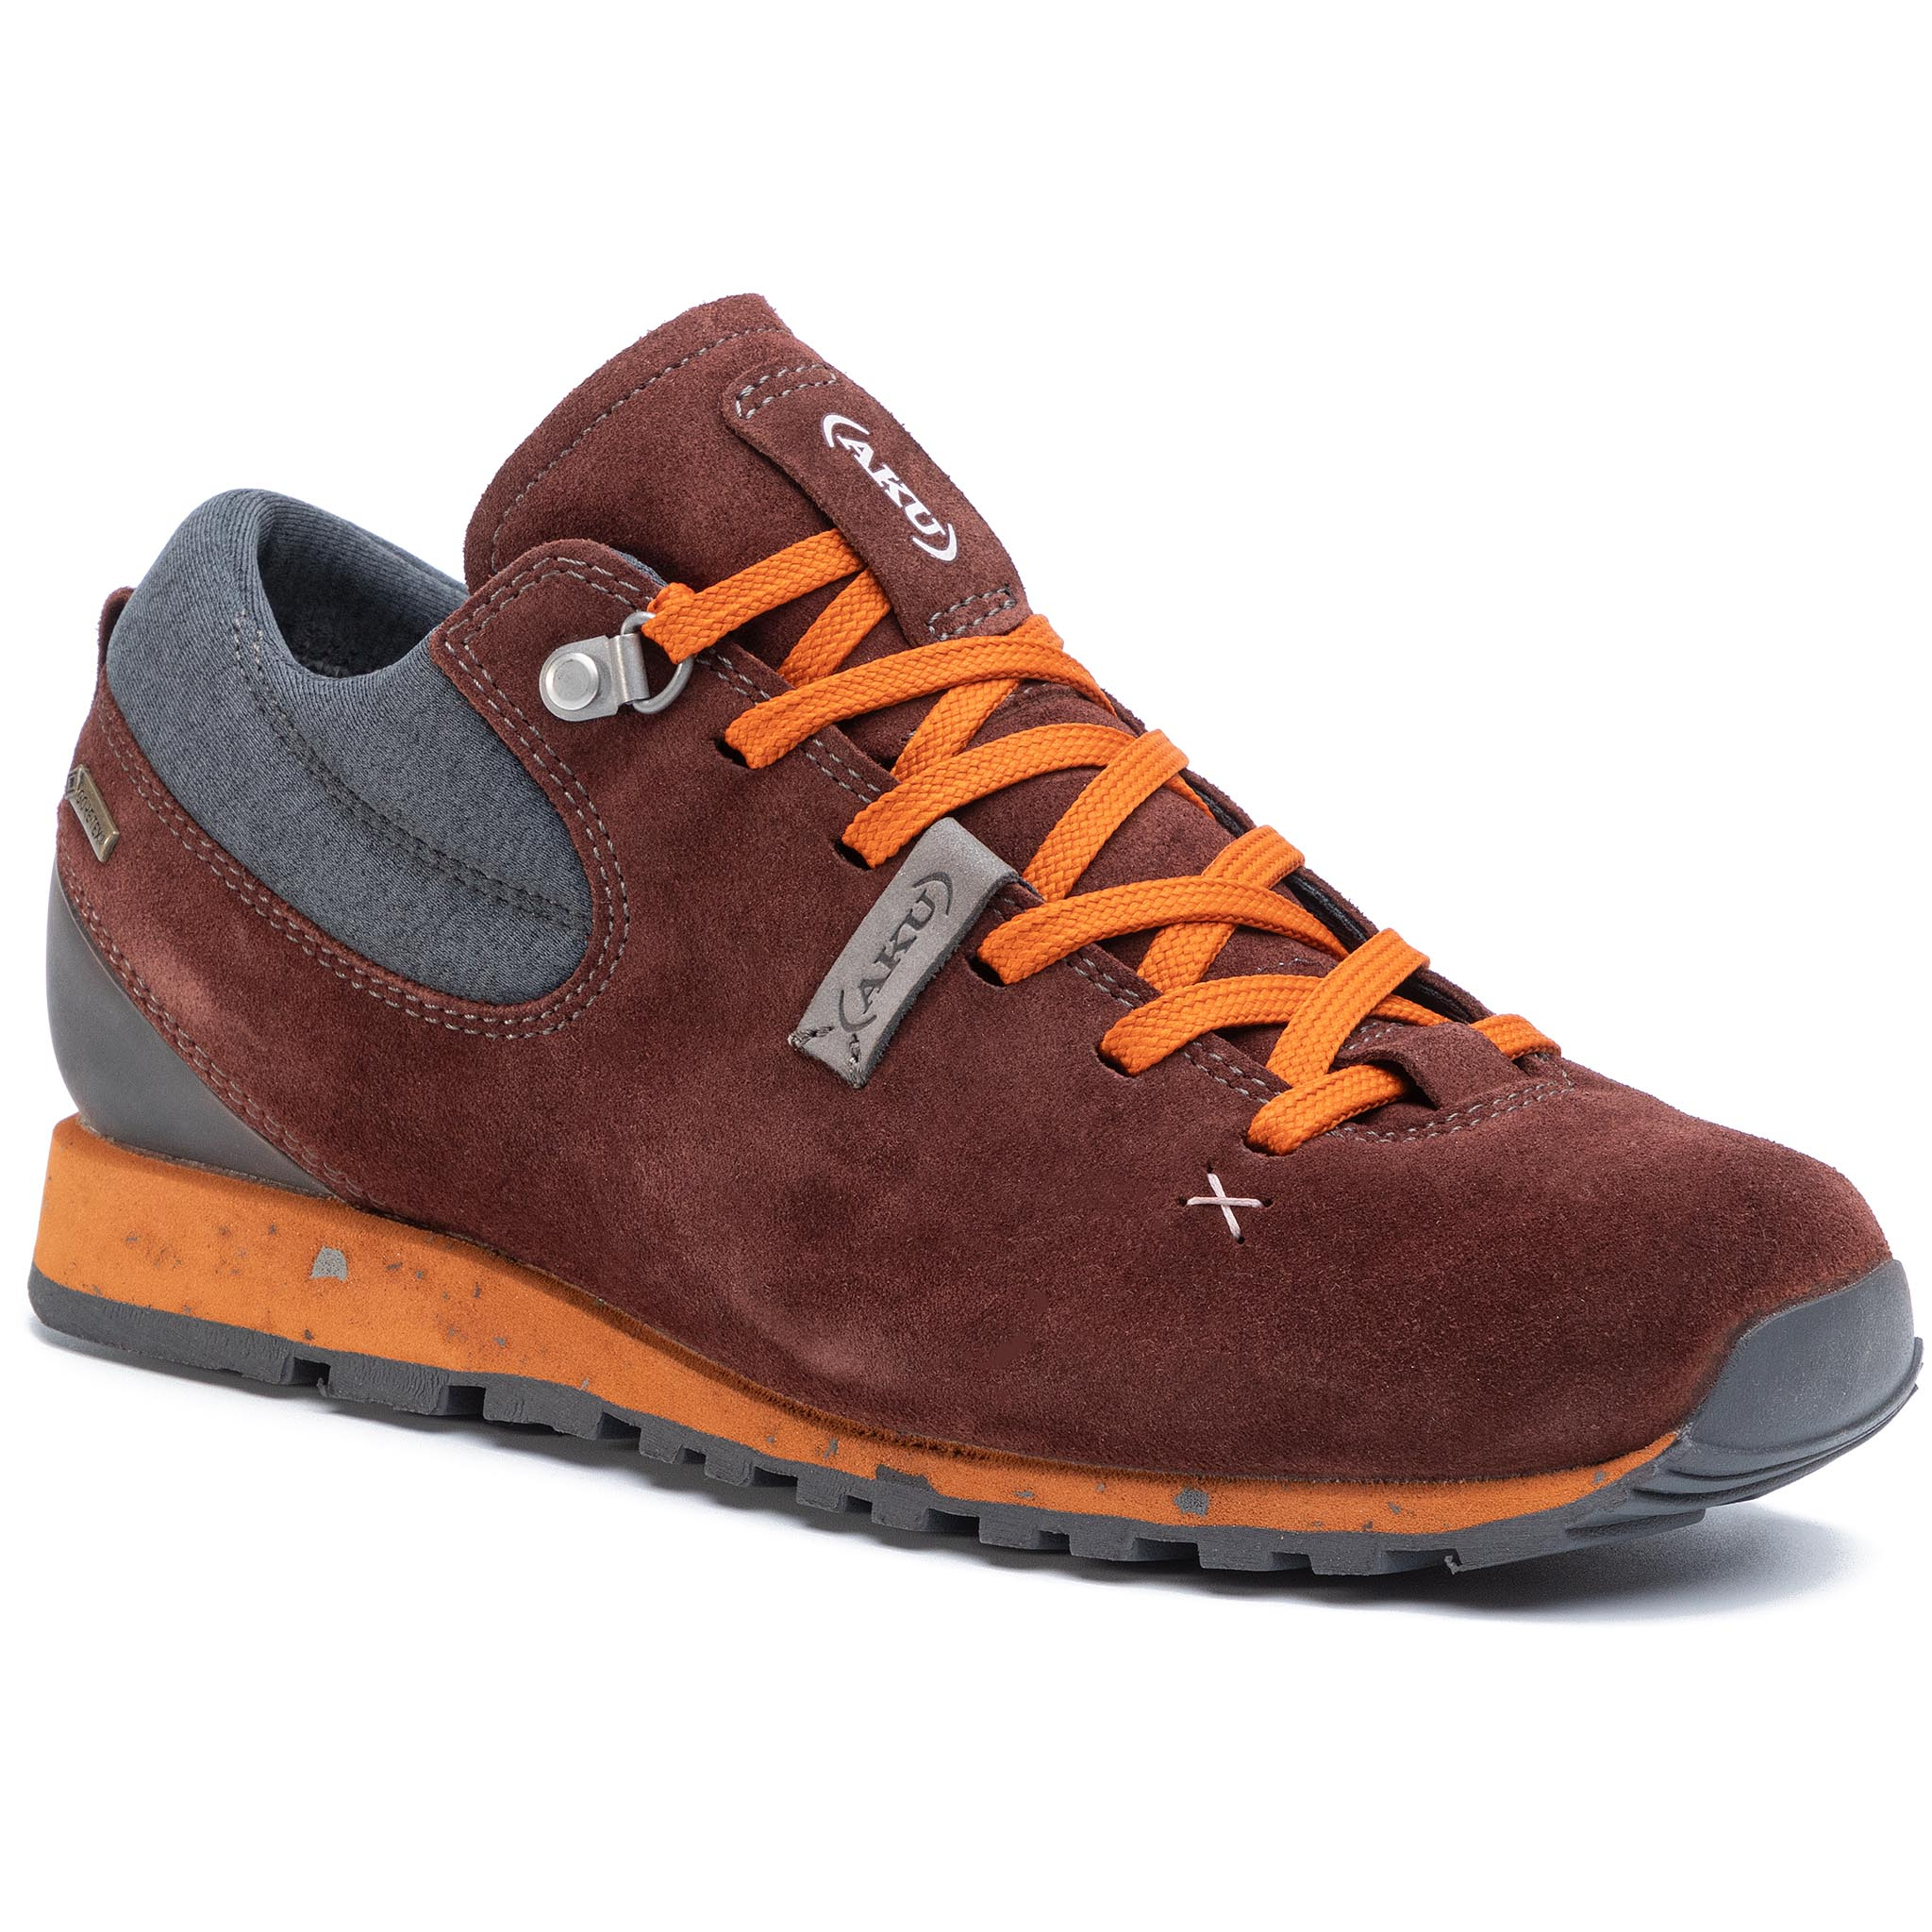 Trekkings Aku - Bellamont Gaia Gt W Gore-Tex 516 Wine Red/Orange 196 imagine epantofi.ro 2021